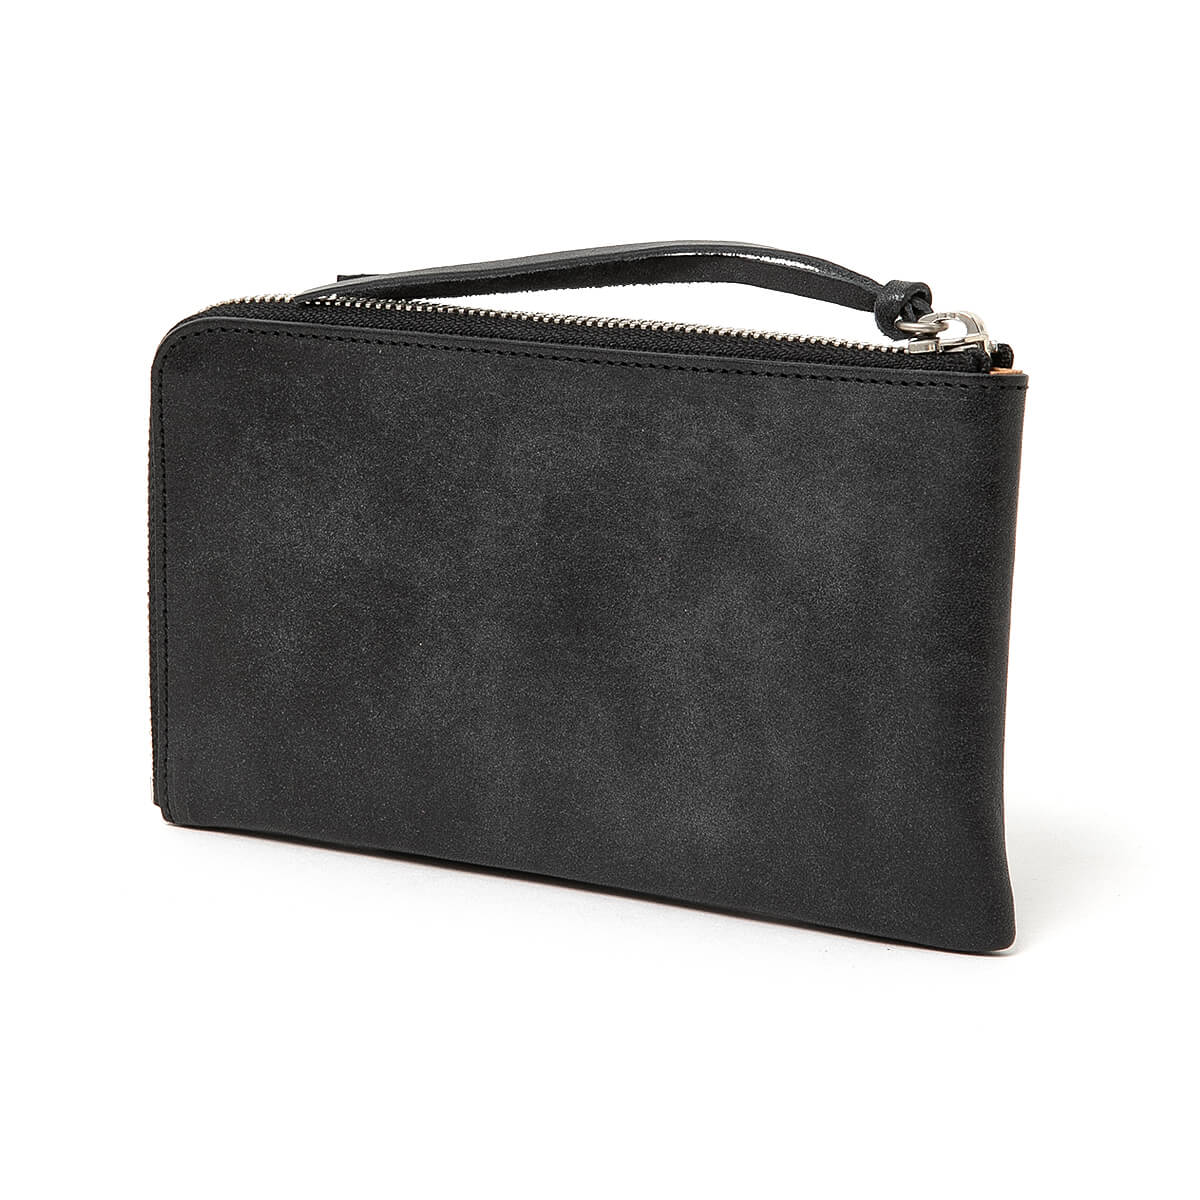 HOBO / OILED COW LEATHER LONG ZIP WALLET (Black)